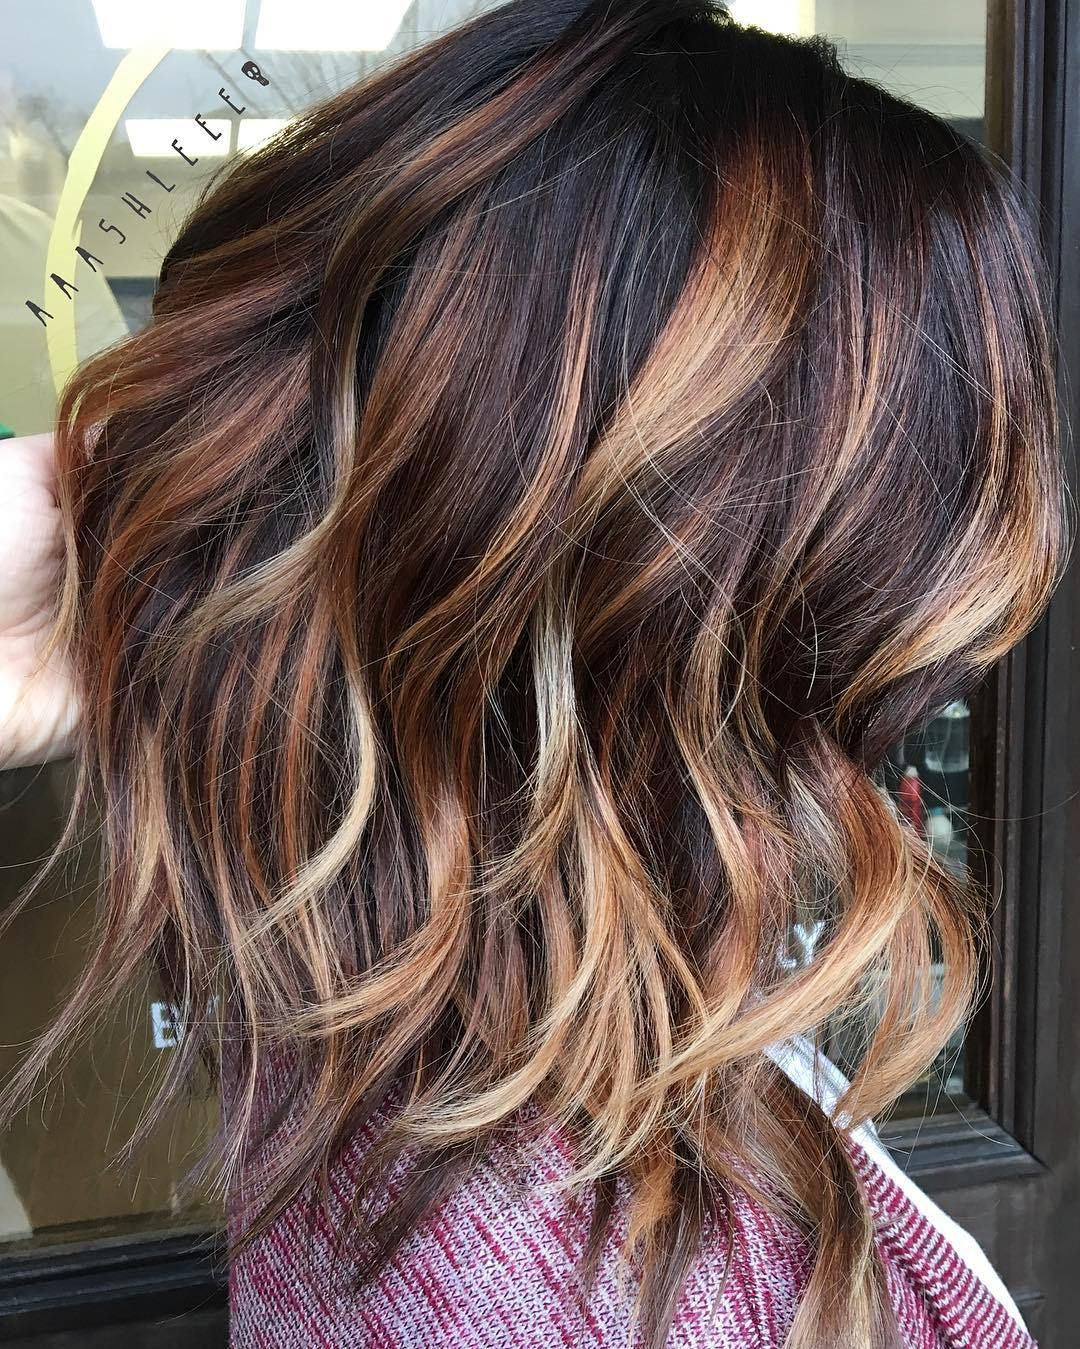 70 Flattering Balayage Hair Color Ideas For 2020 Ombre Hair Blonde Fall Hair Color For Brunettes Hair Styles